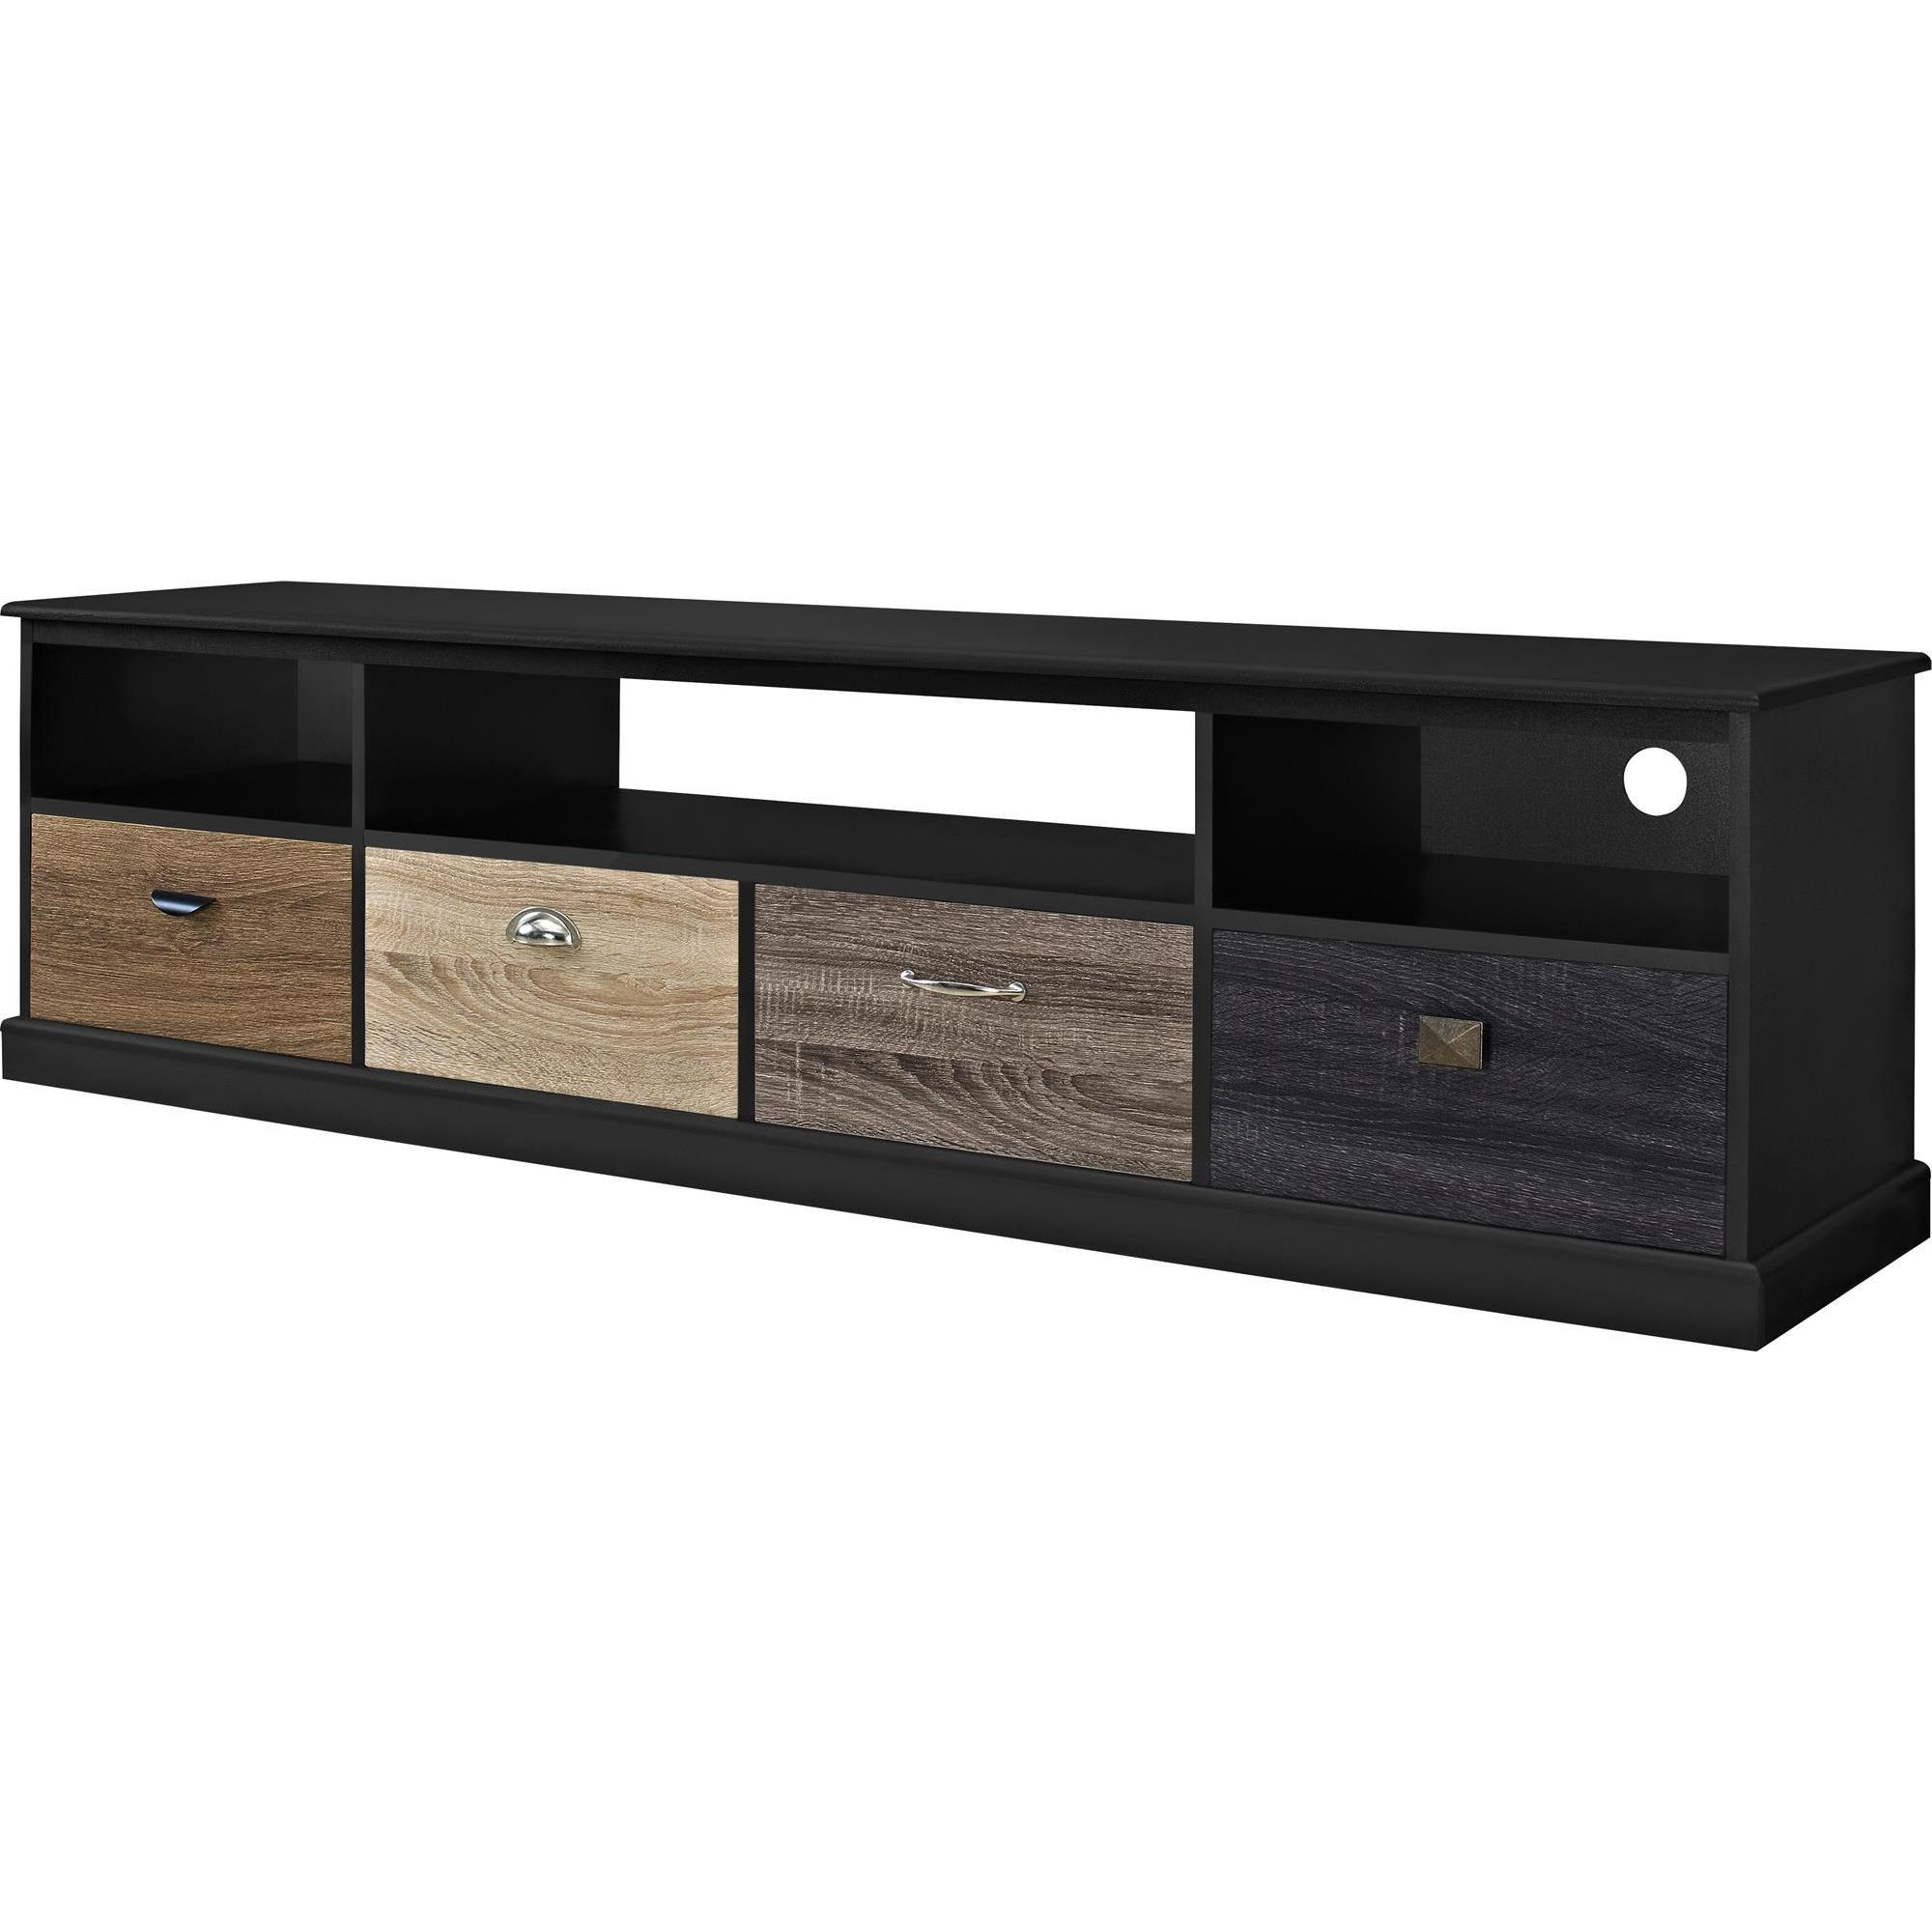 Shop Avenue Greene Mercer 65 Inch Black Tv Console With Multicolored Inside Kilian Grey 49 Inch Tv Stands (View 2 of 20)